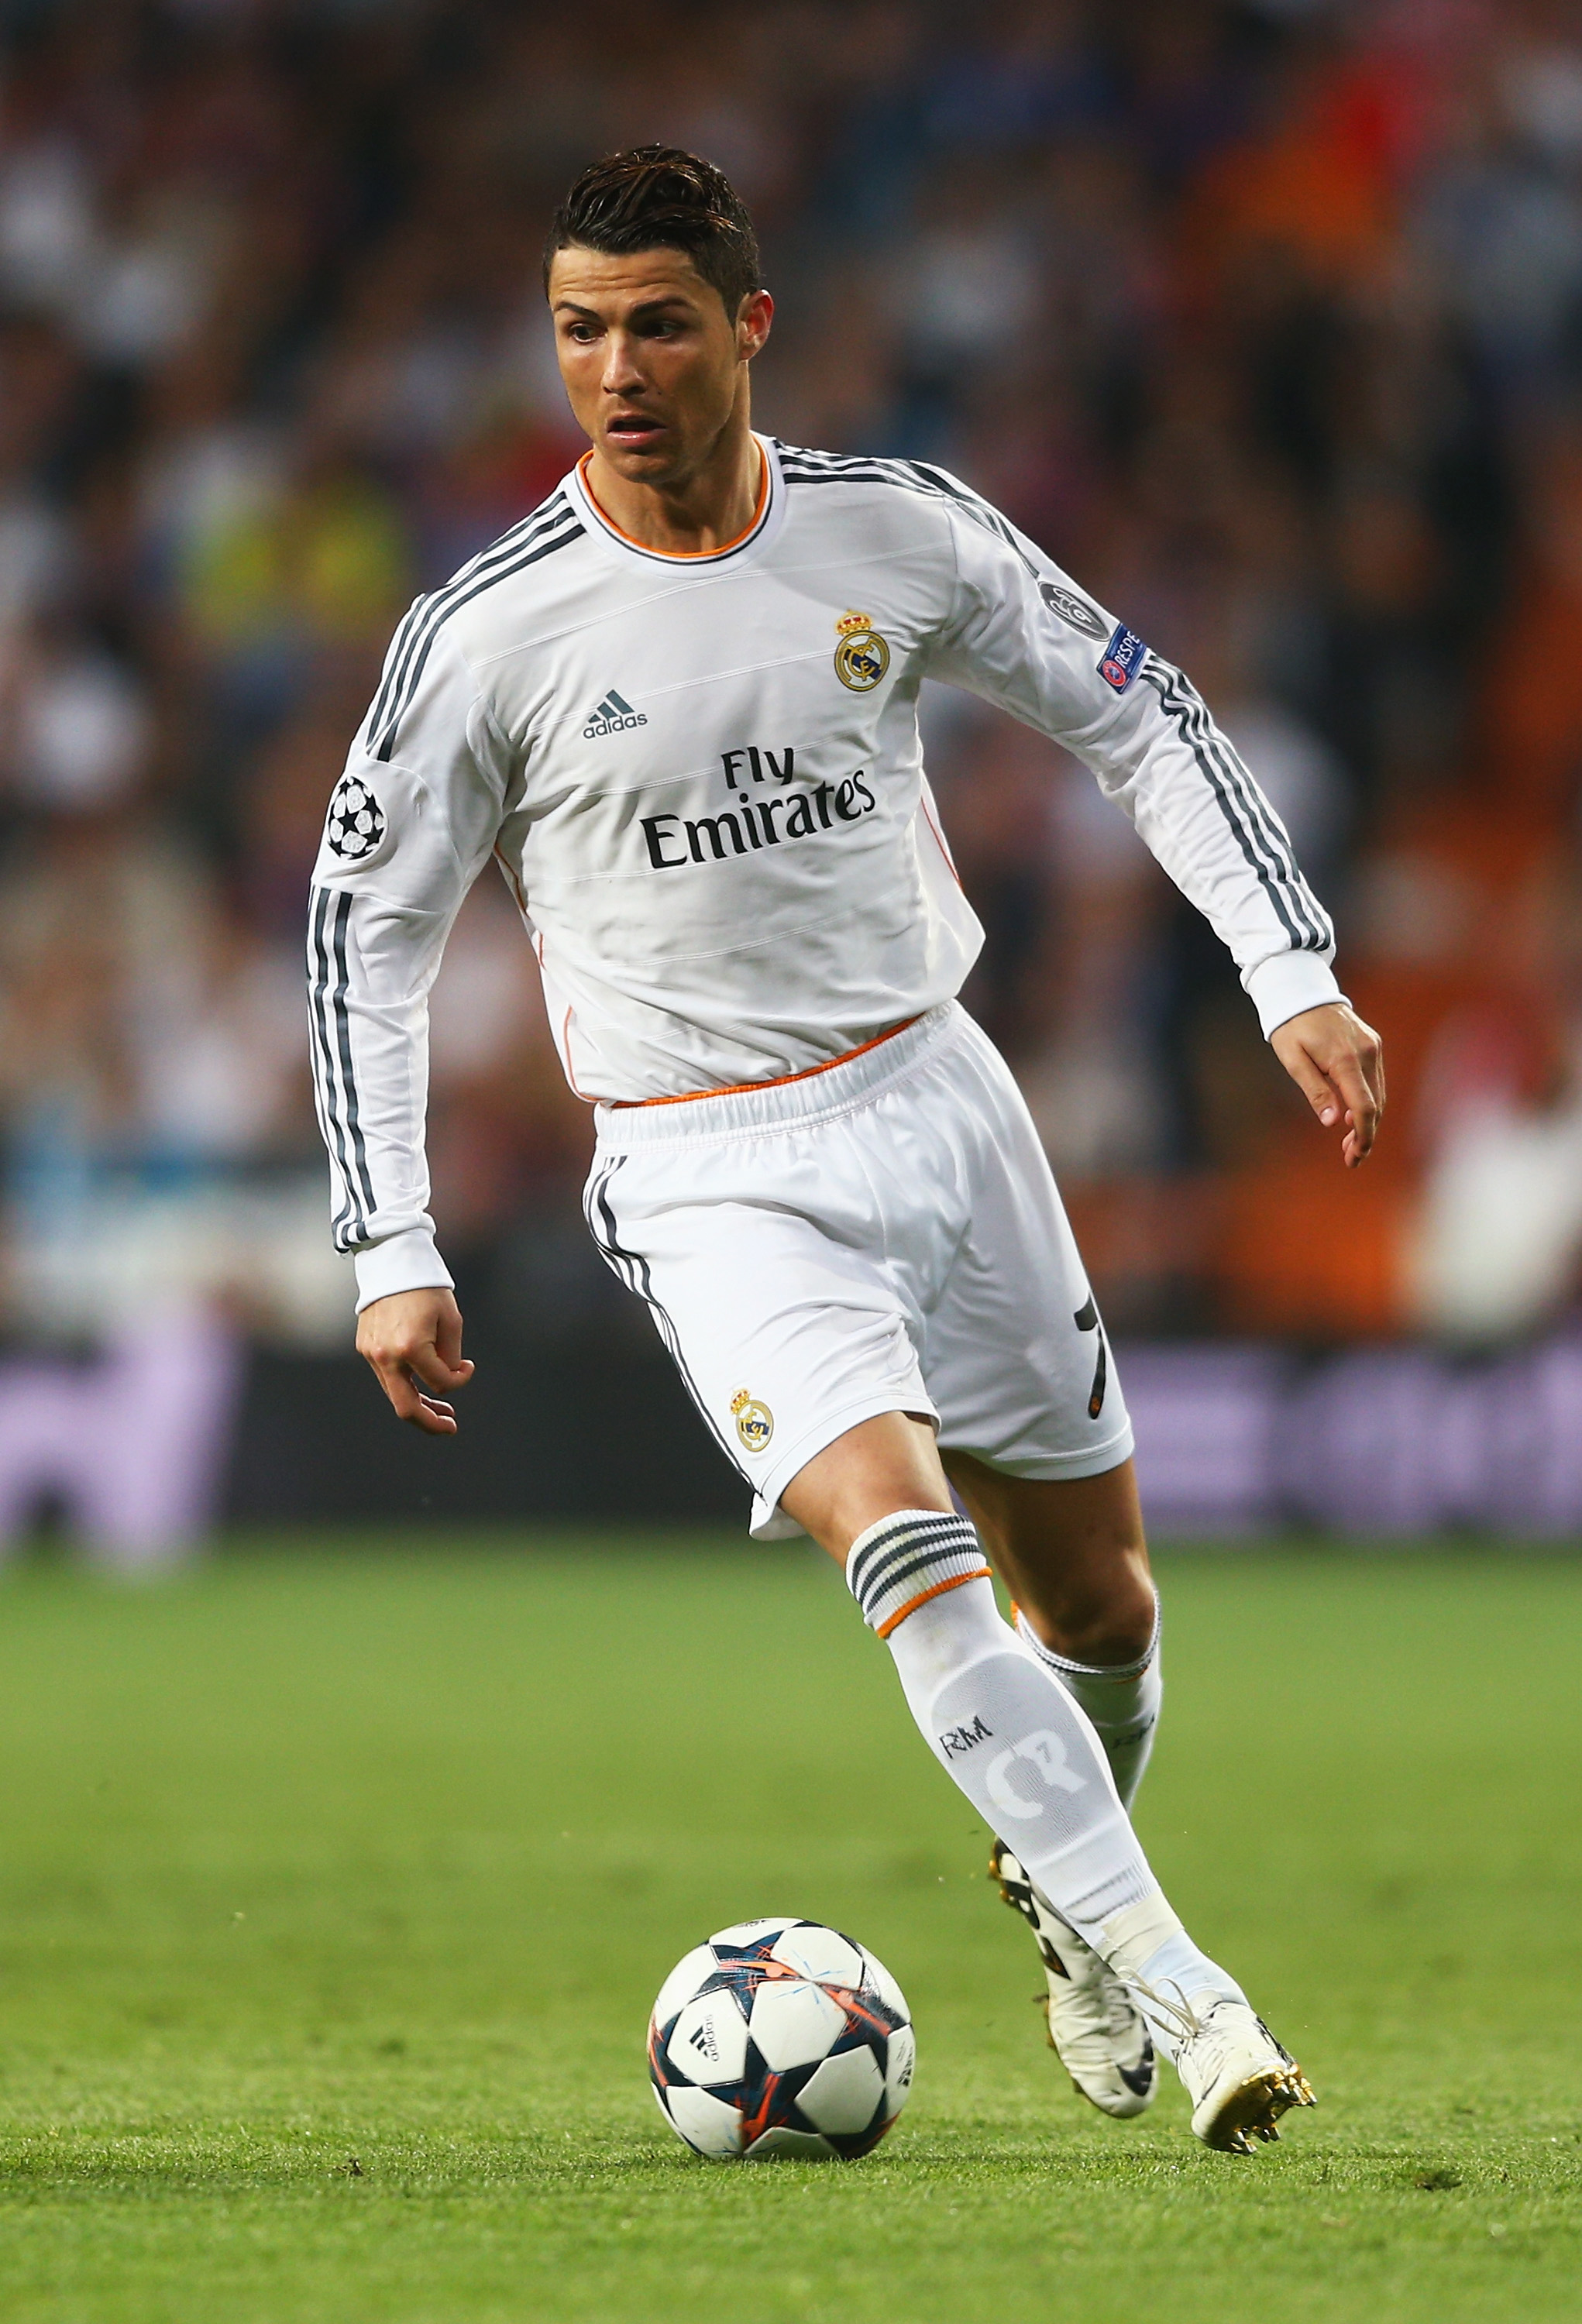 cristiano ronaldo hd wallpapers free download